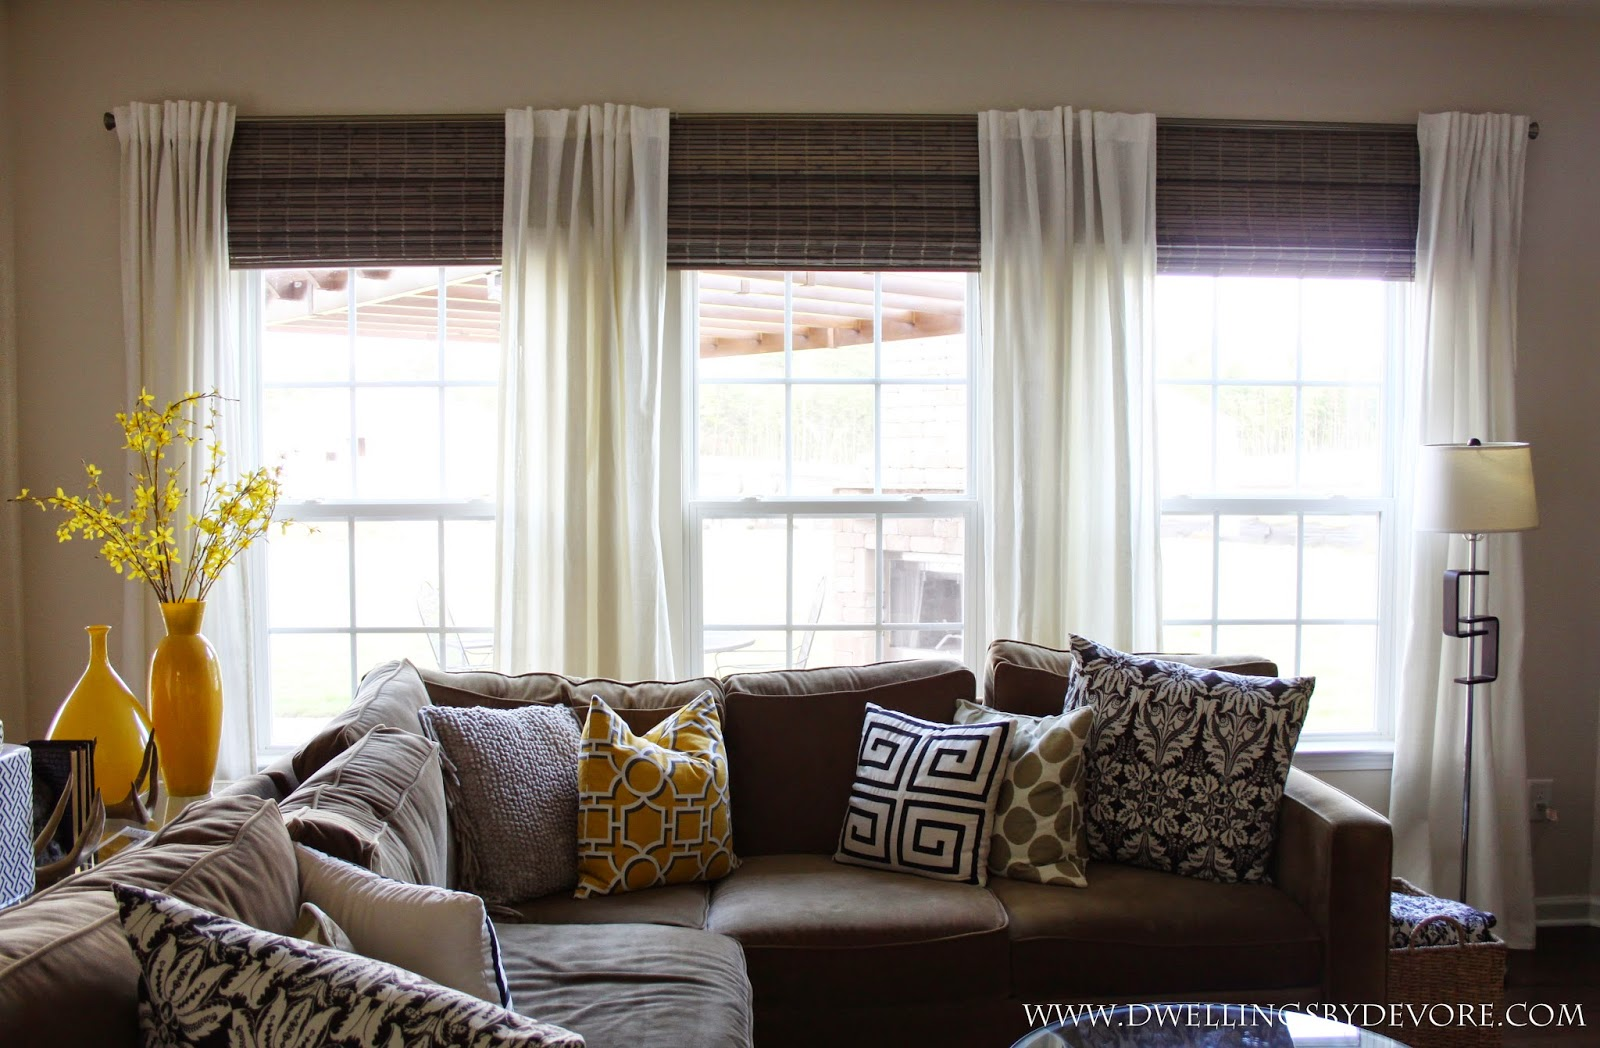 dwellingsdevore: bamboo shades to make your windows look larger